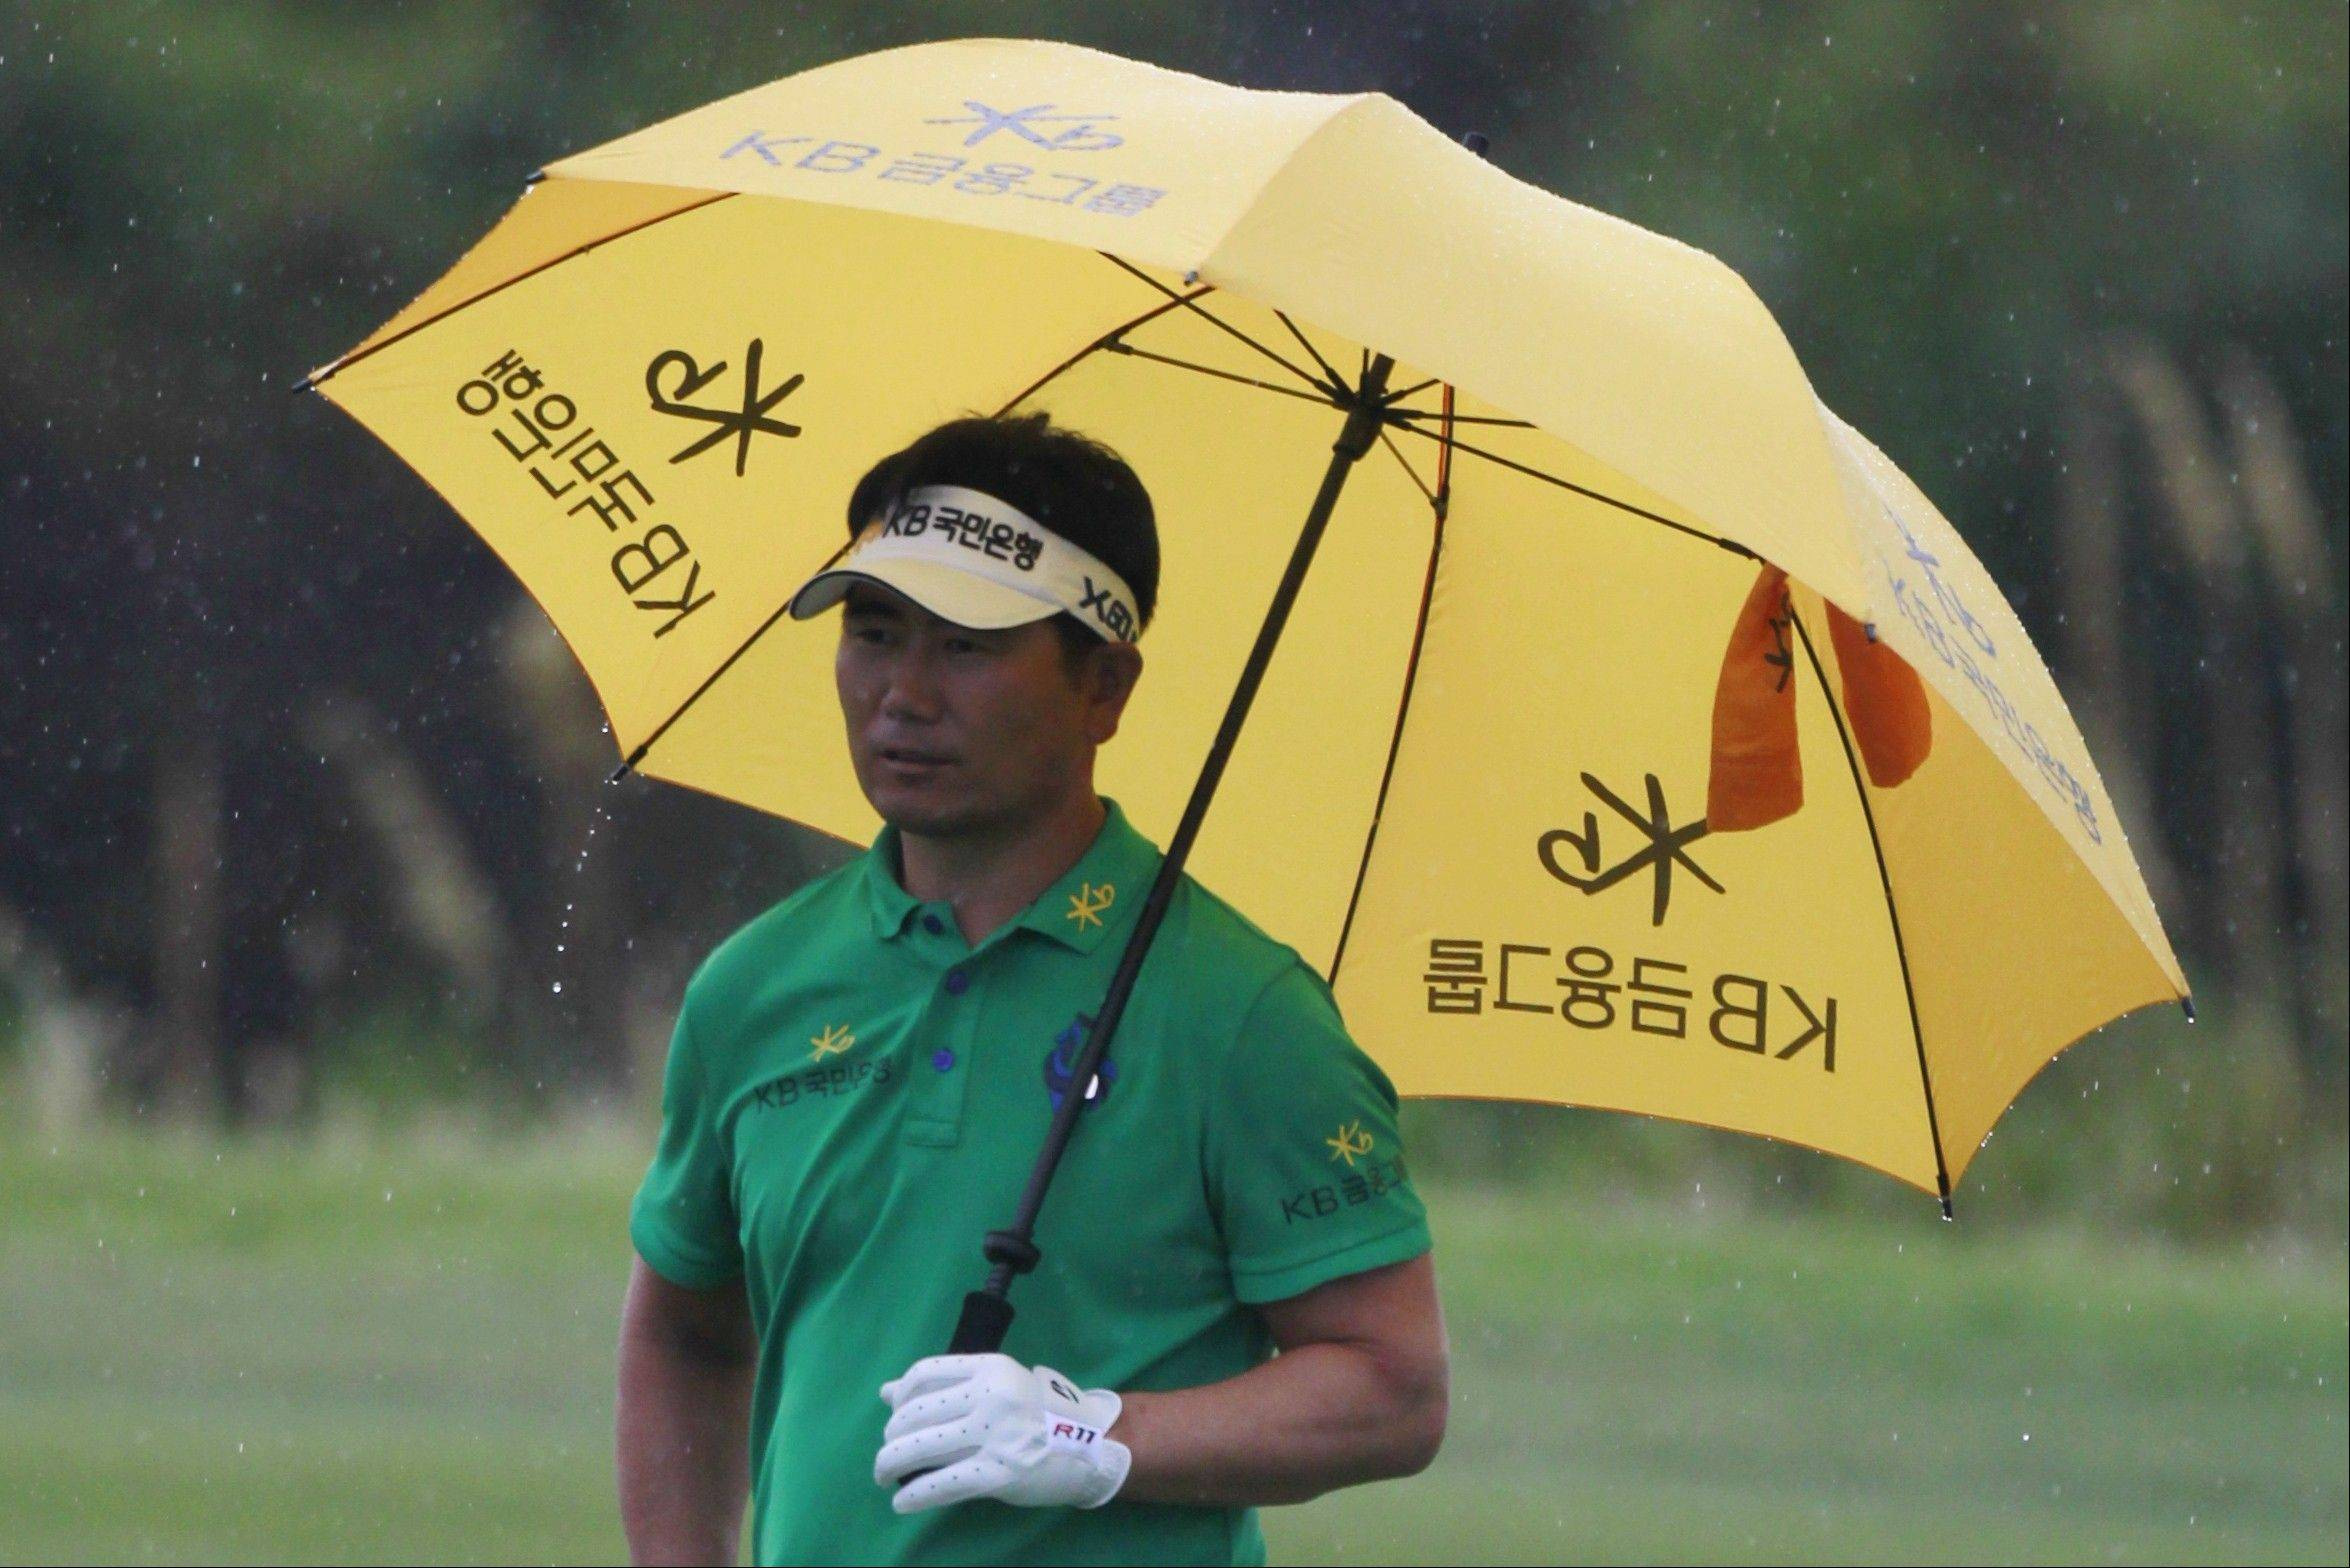 Y.E. Yang waits in the rain Wednesday during a practice round for the PGA Championship. Yang shocked the world when he rallied to beat Tiger Woods at the 2009 PGA Championship.